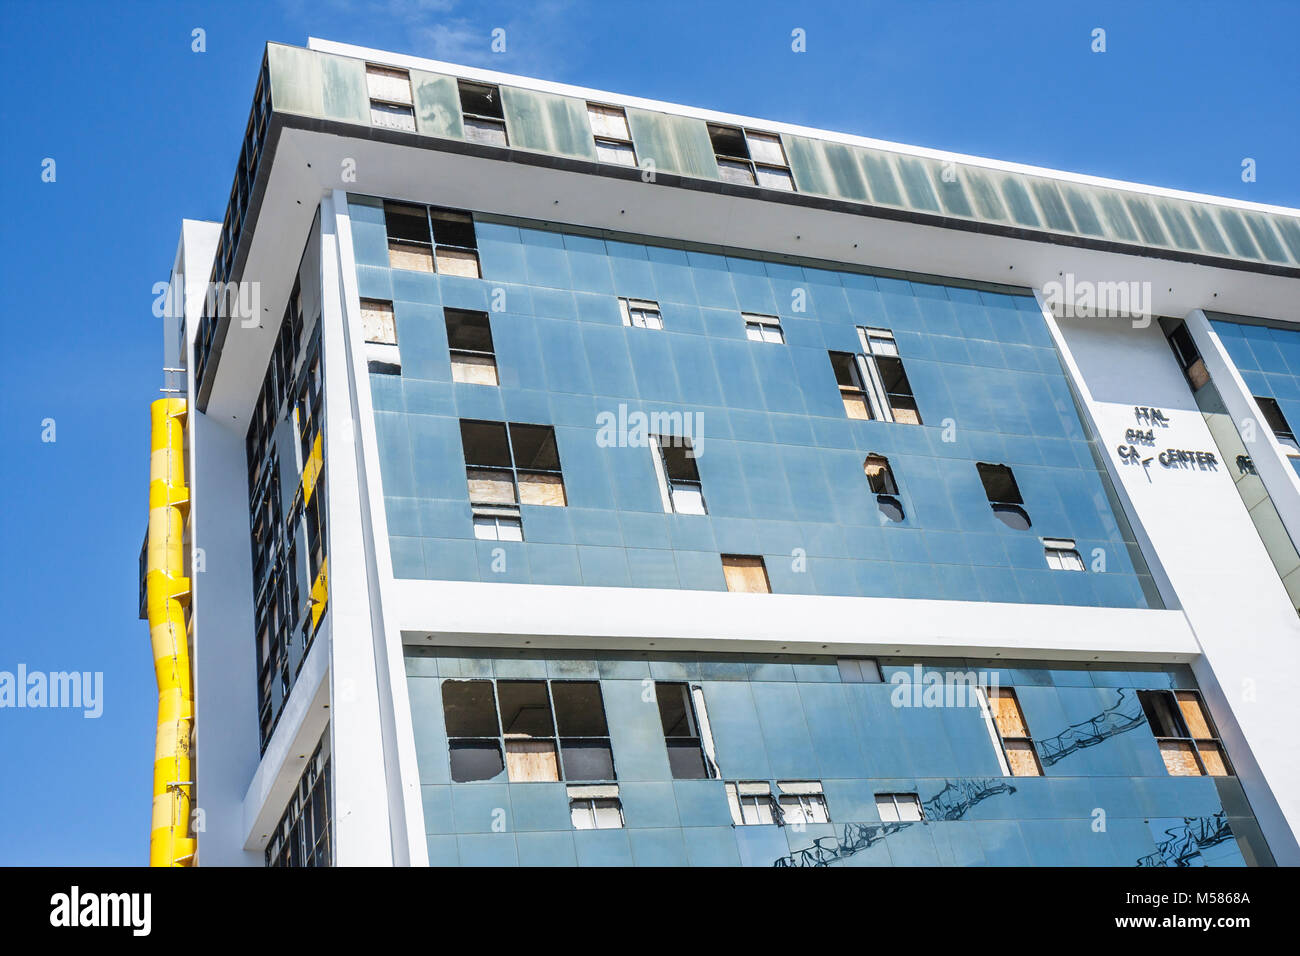 high rise building former South Shore Hospital hurricane damage boarded up windows broken glass panels commercial - Stock Image